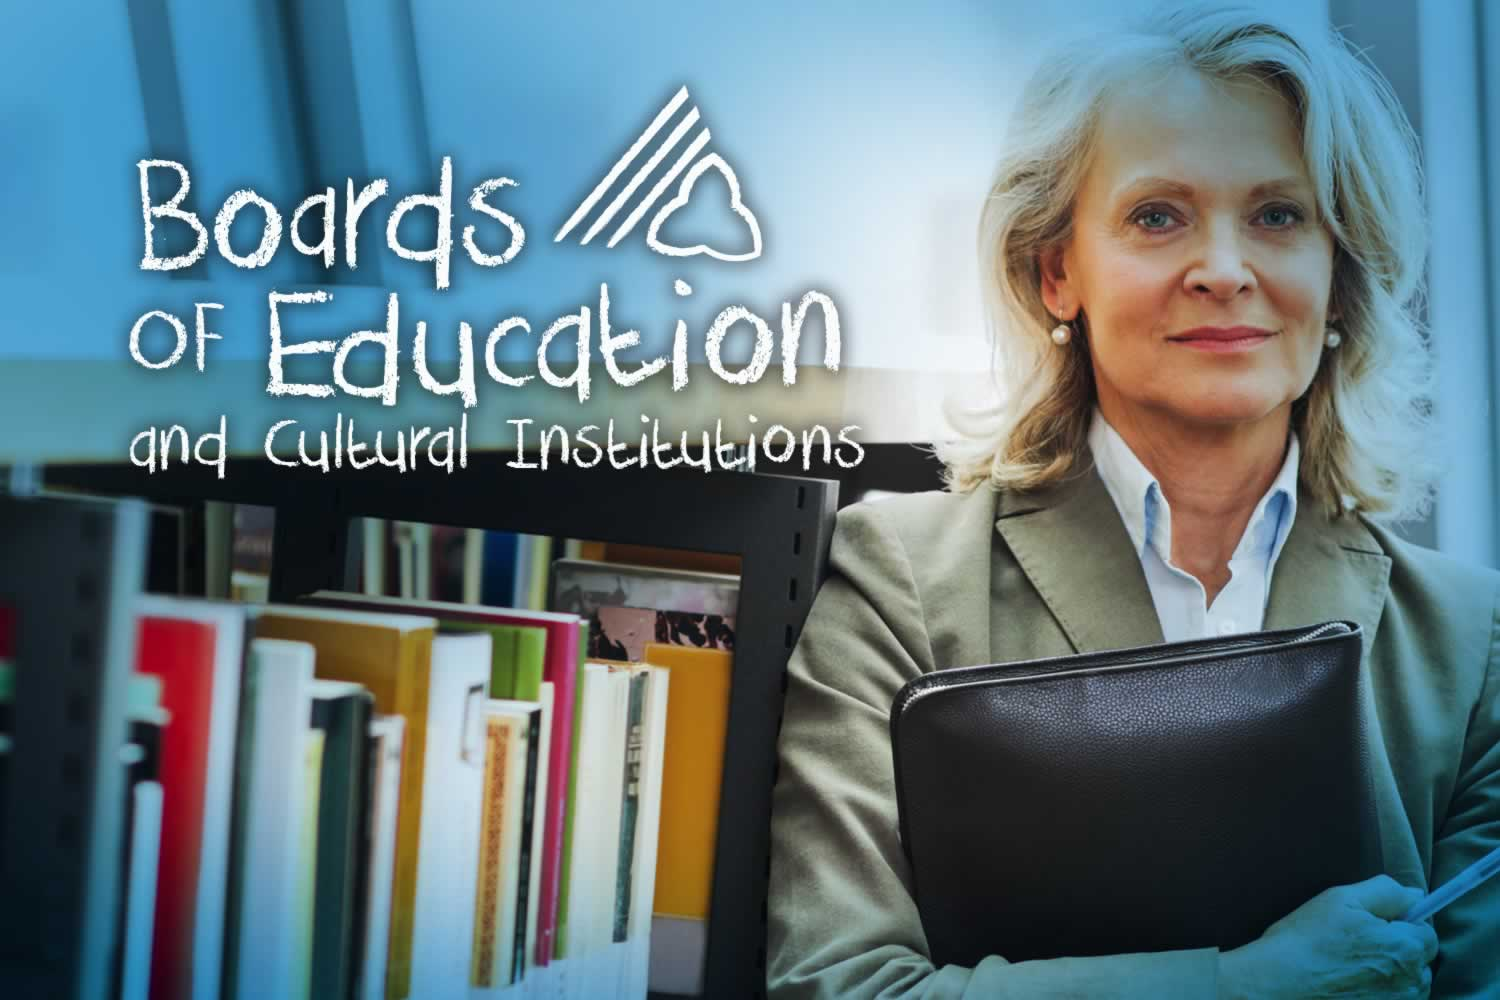 Boards of Education and Cultural Institutions